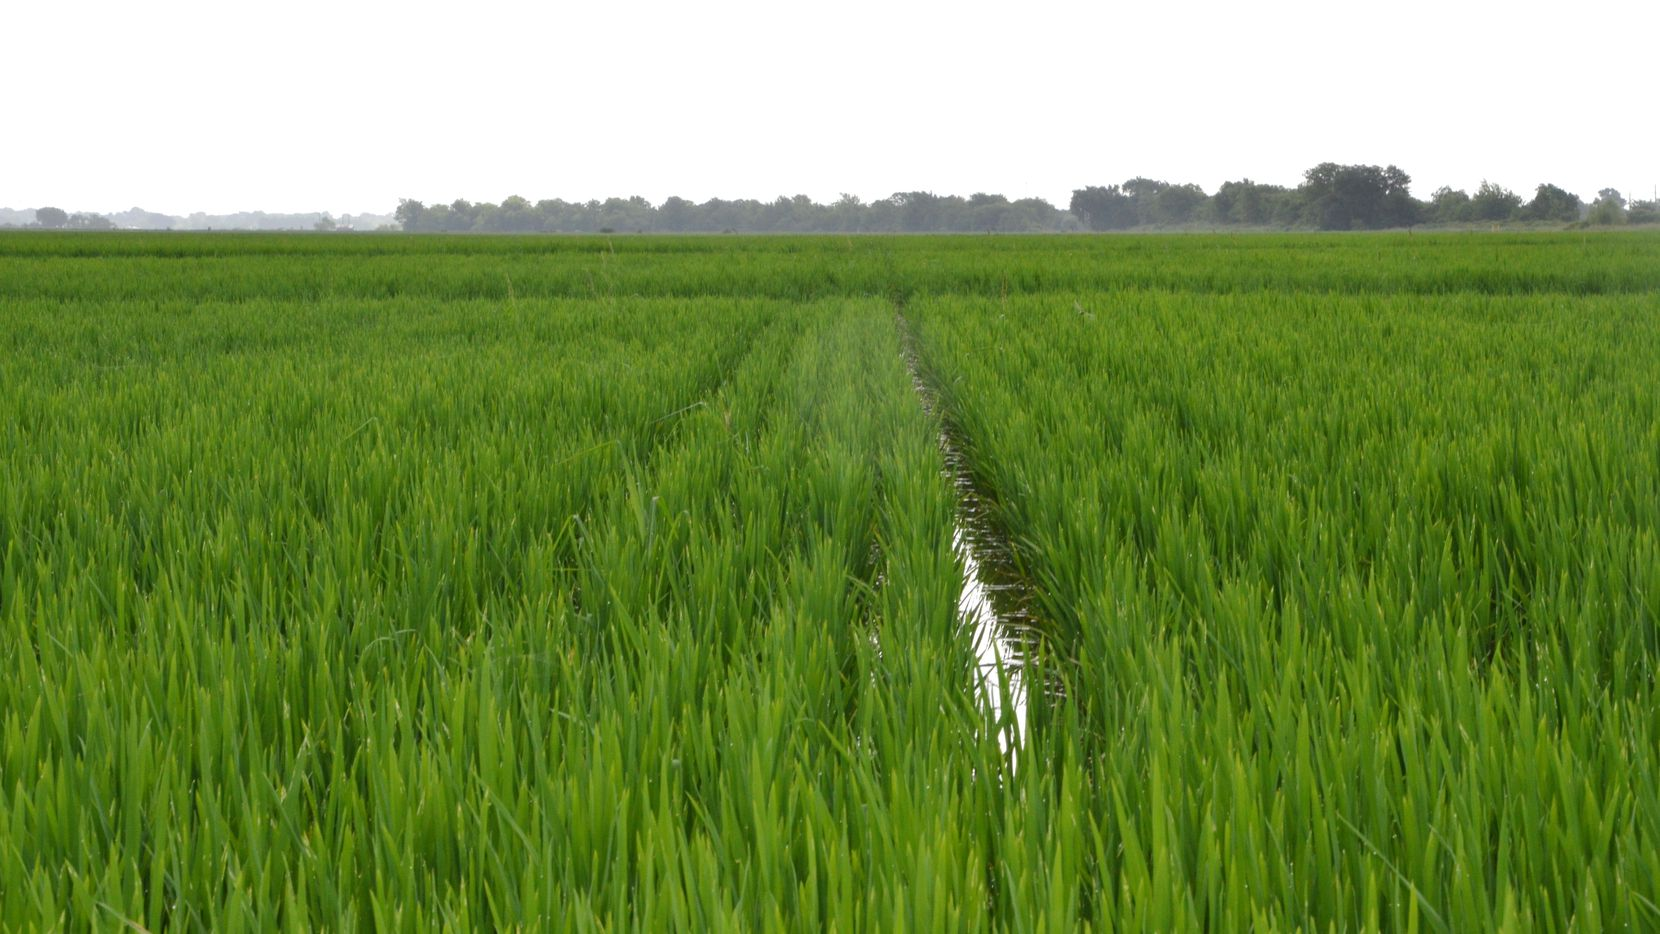 A rice field in southeast Texas. (Courtesy of Texas A&M AgriLife Communications.)